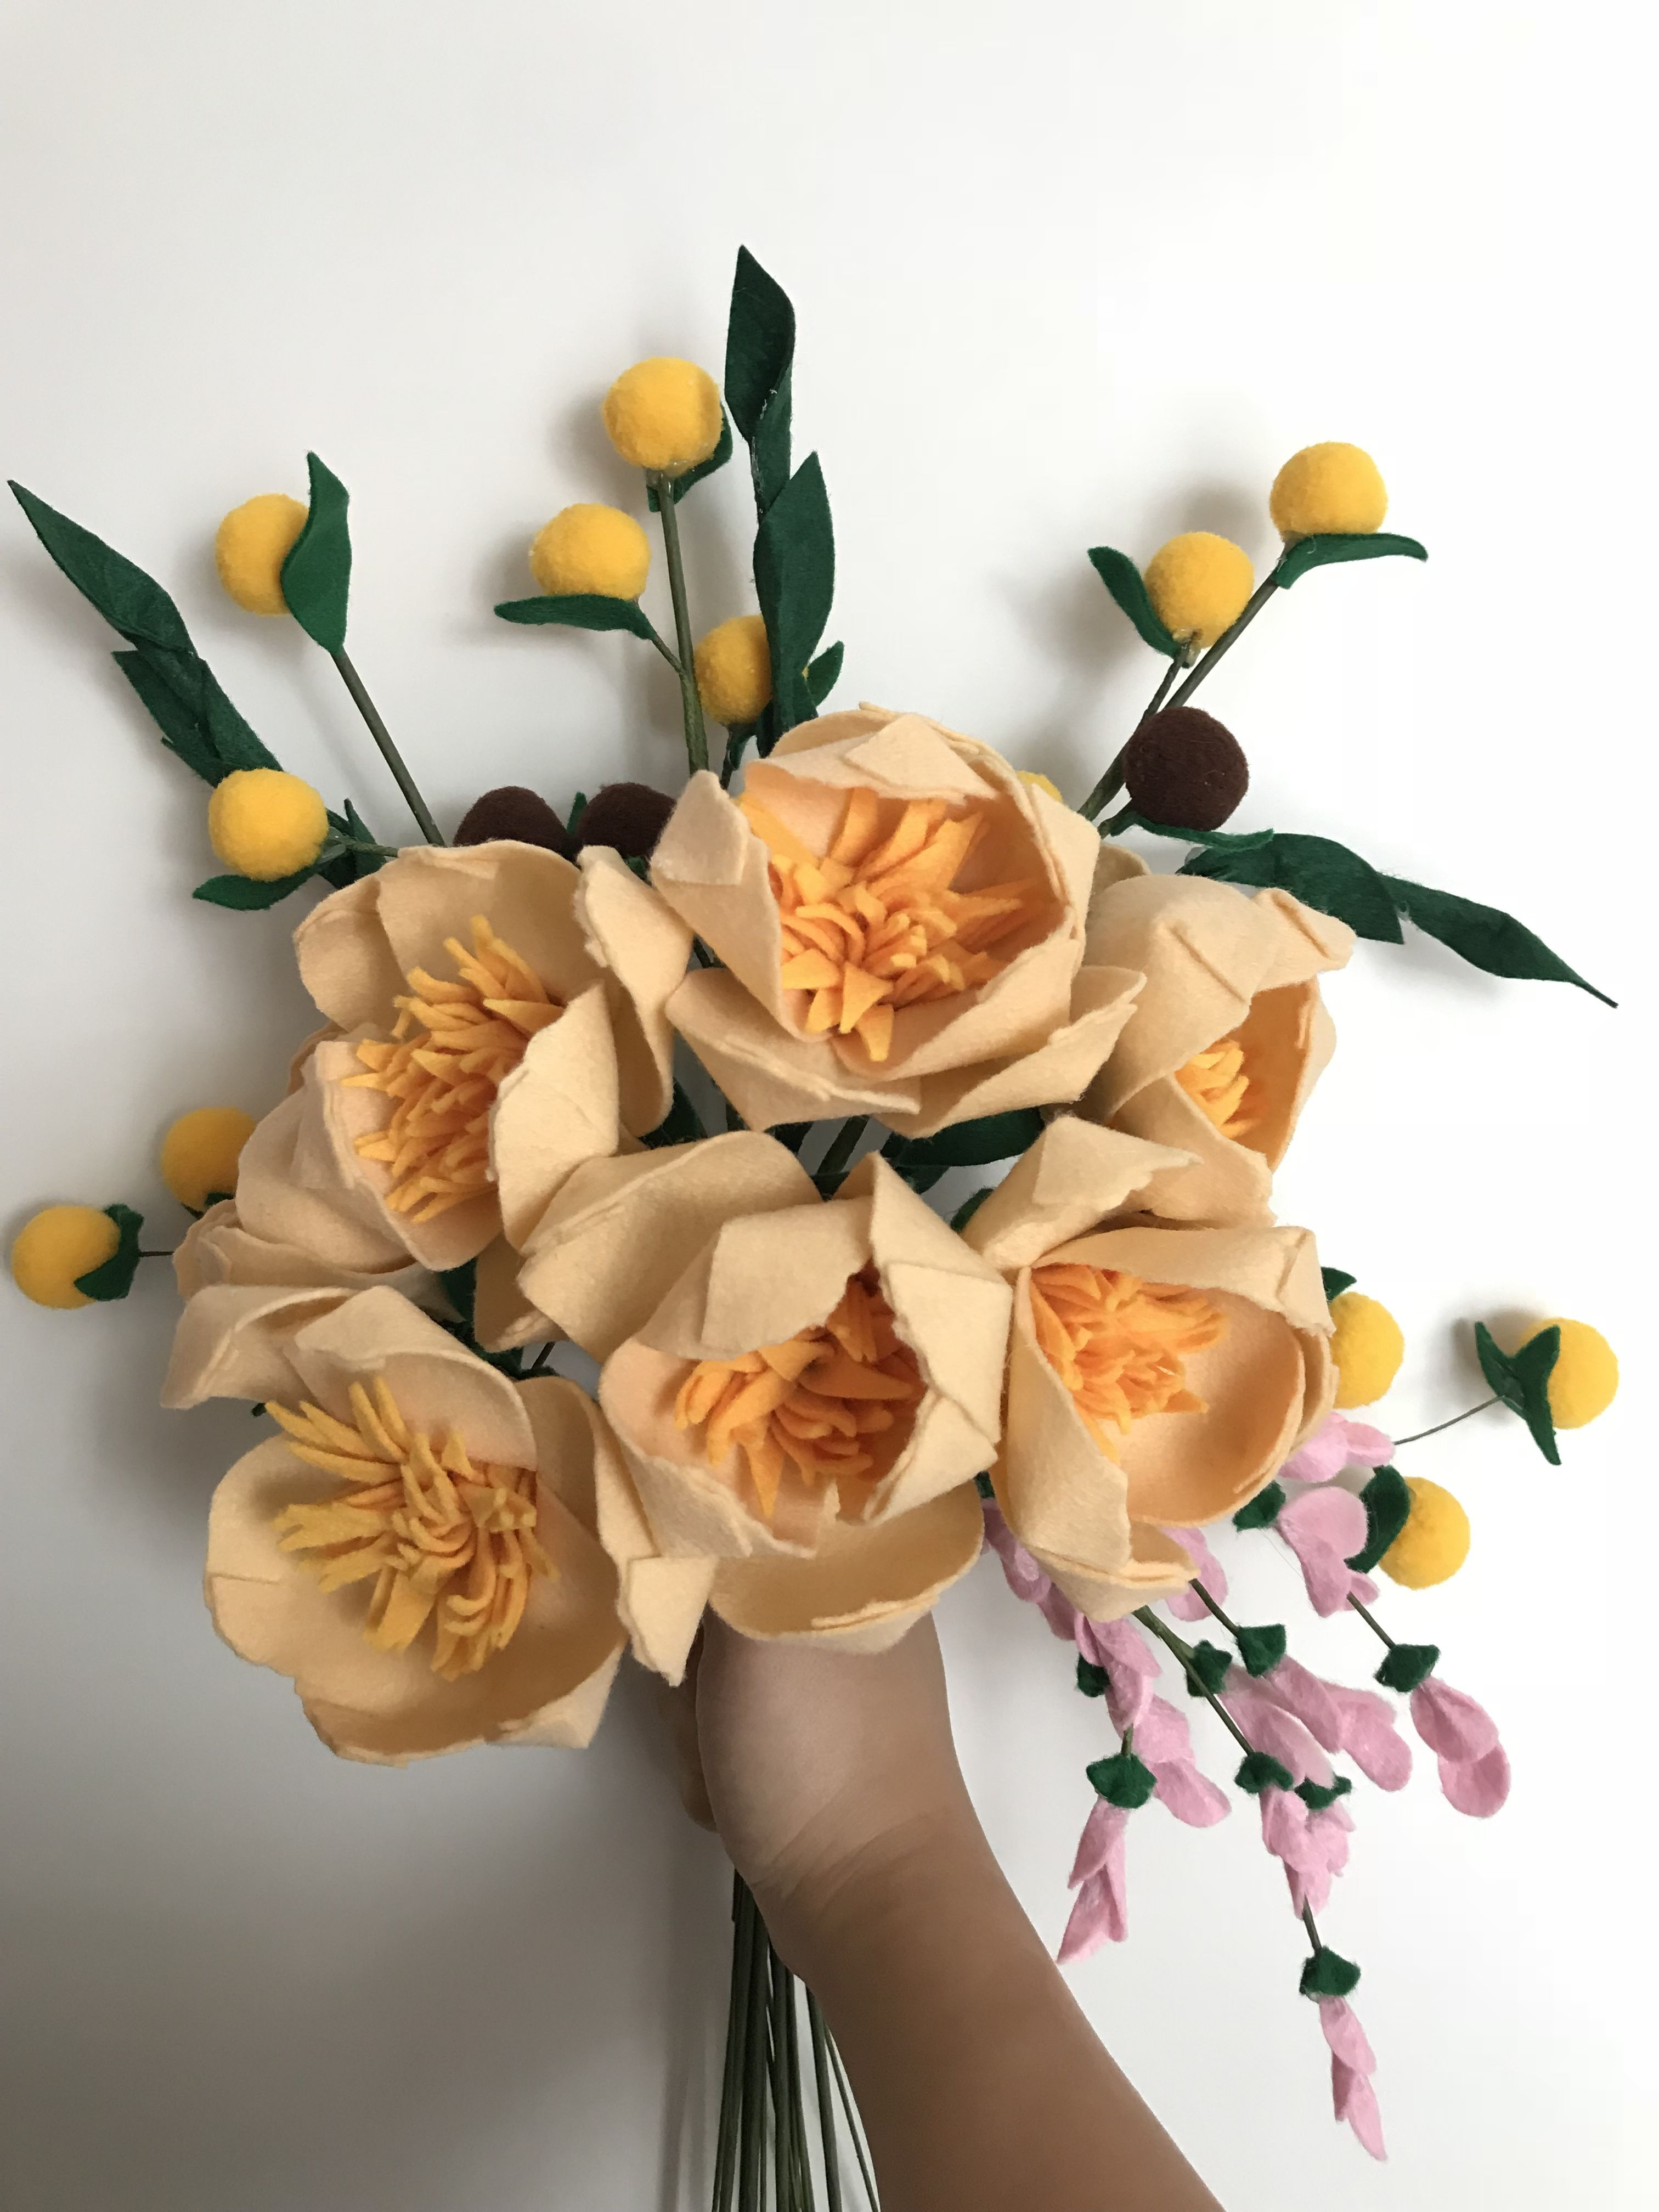 Felt flowers bouquet in beige colour with cheese poms poms project felt flowers bouquet in beige colour with cheese poms poms izmirmasajfo